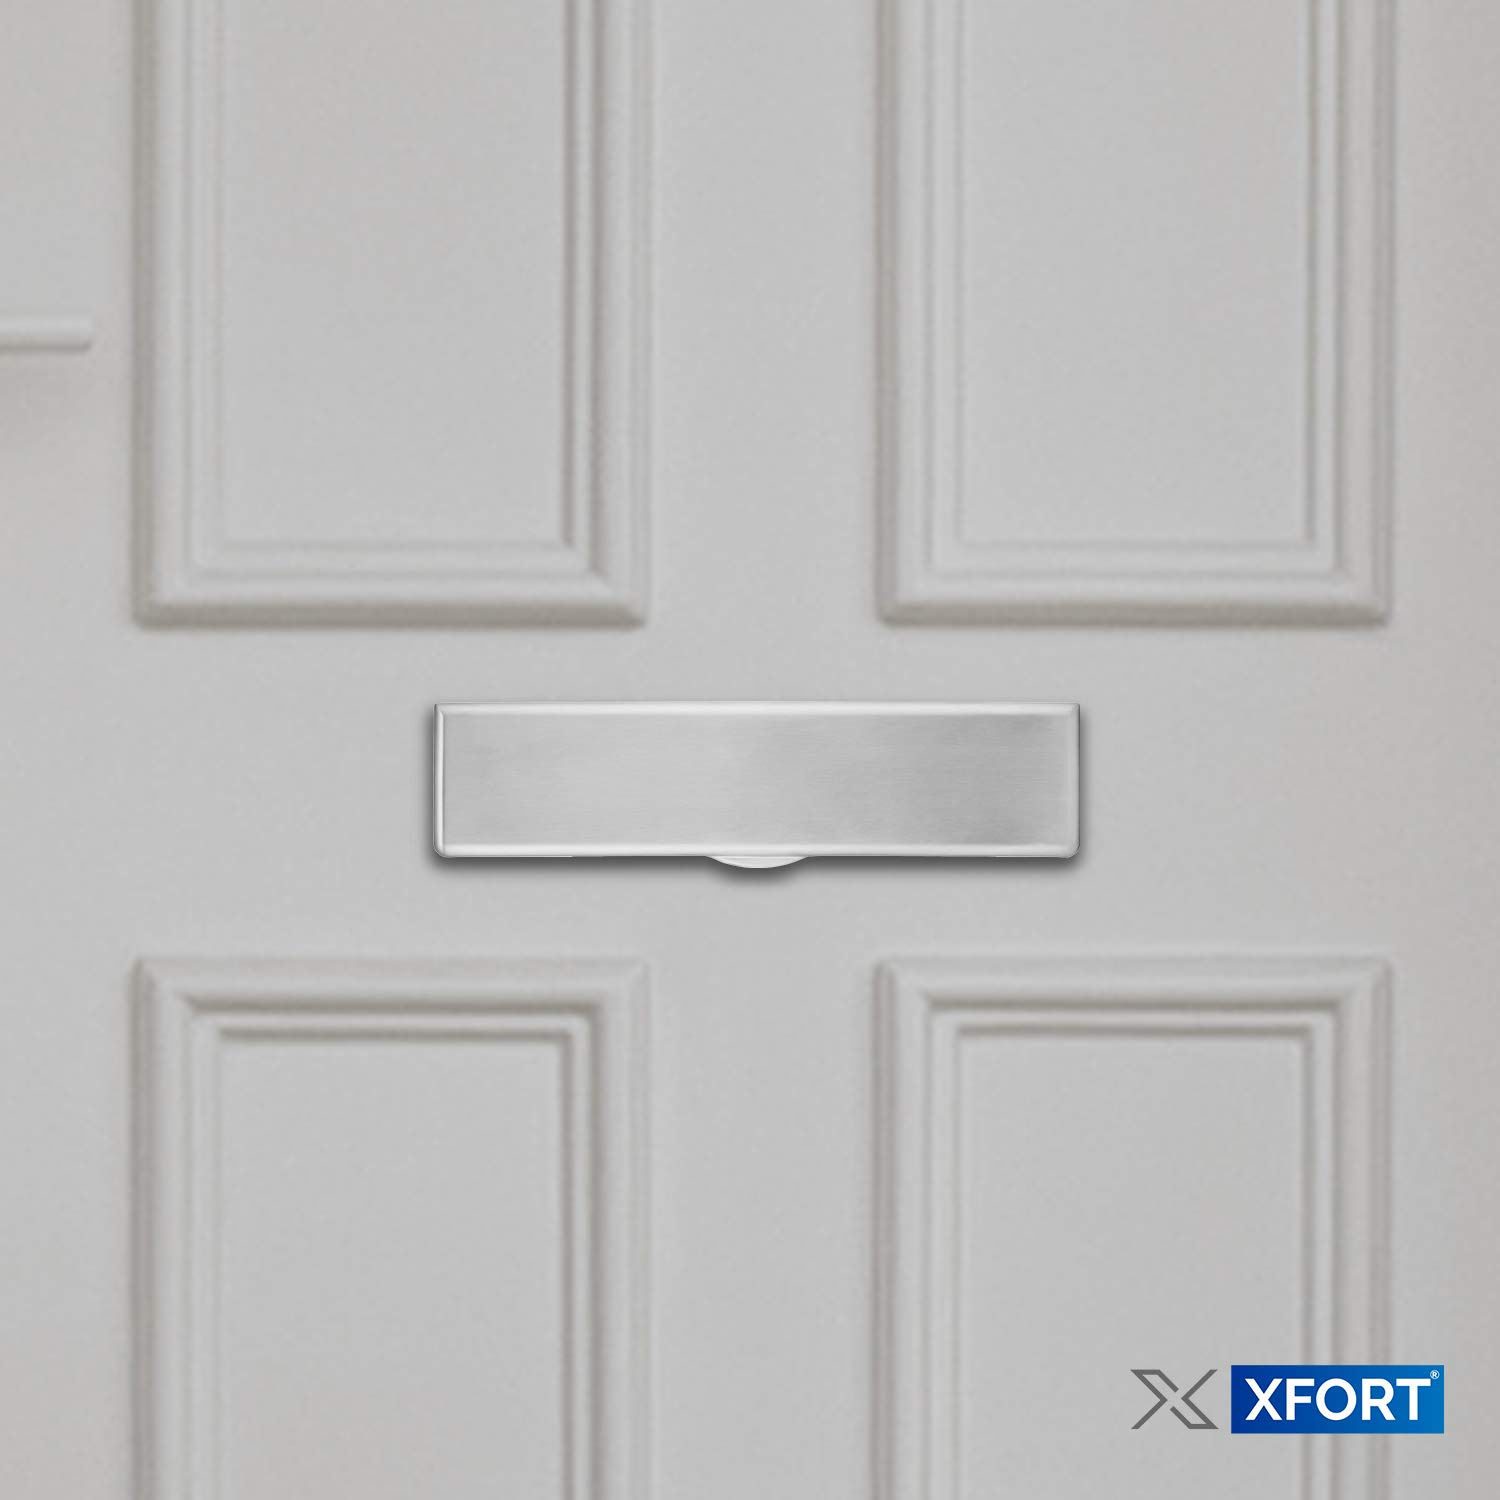 uPVC and Composite Doors XFORT/® 12 Inch Letterplate for Wooden Letterbox Plate with White Powder Coat Finish Unique Frameless Design for an Elegant Modern Touch for Your Front Door. Metal